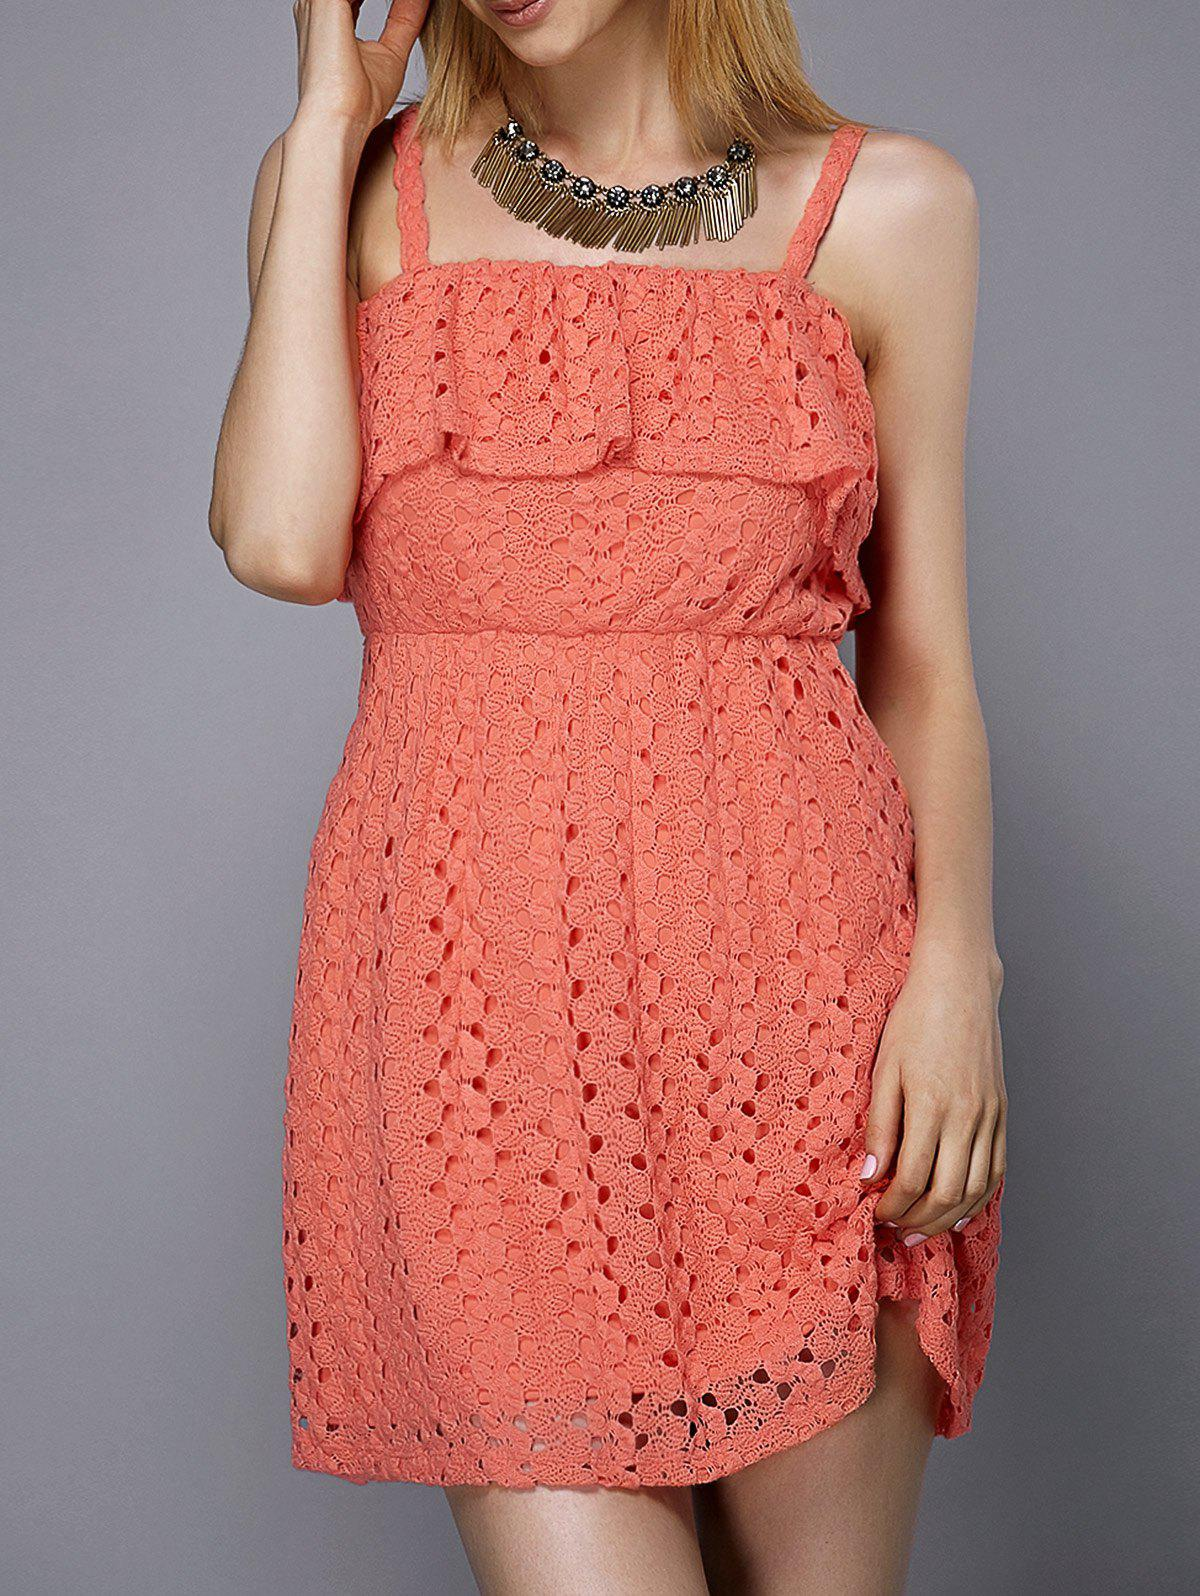 Trendy Spaghetti Strap Solid Color Flounce Hollow Out Women's Dress - ORANGEPINK L